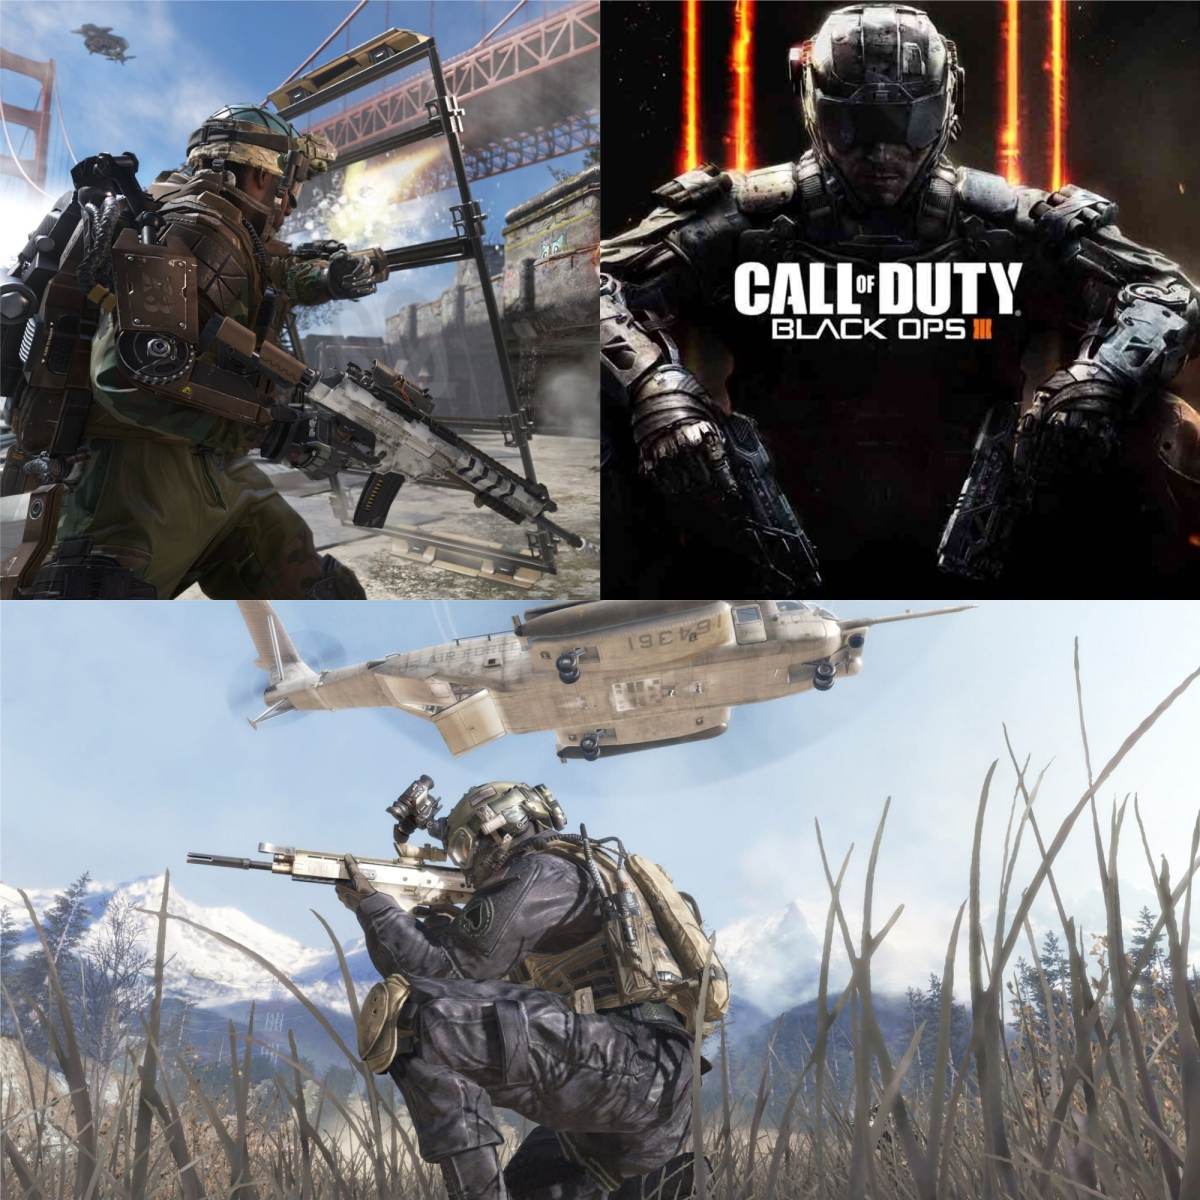 Every Call of Duty Ranked From Worst to Best According to Metacritic